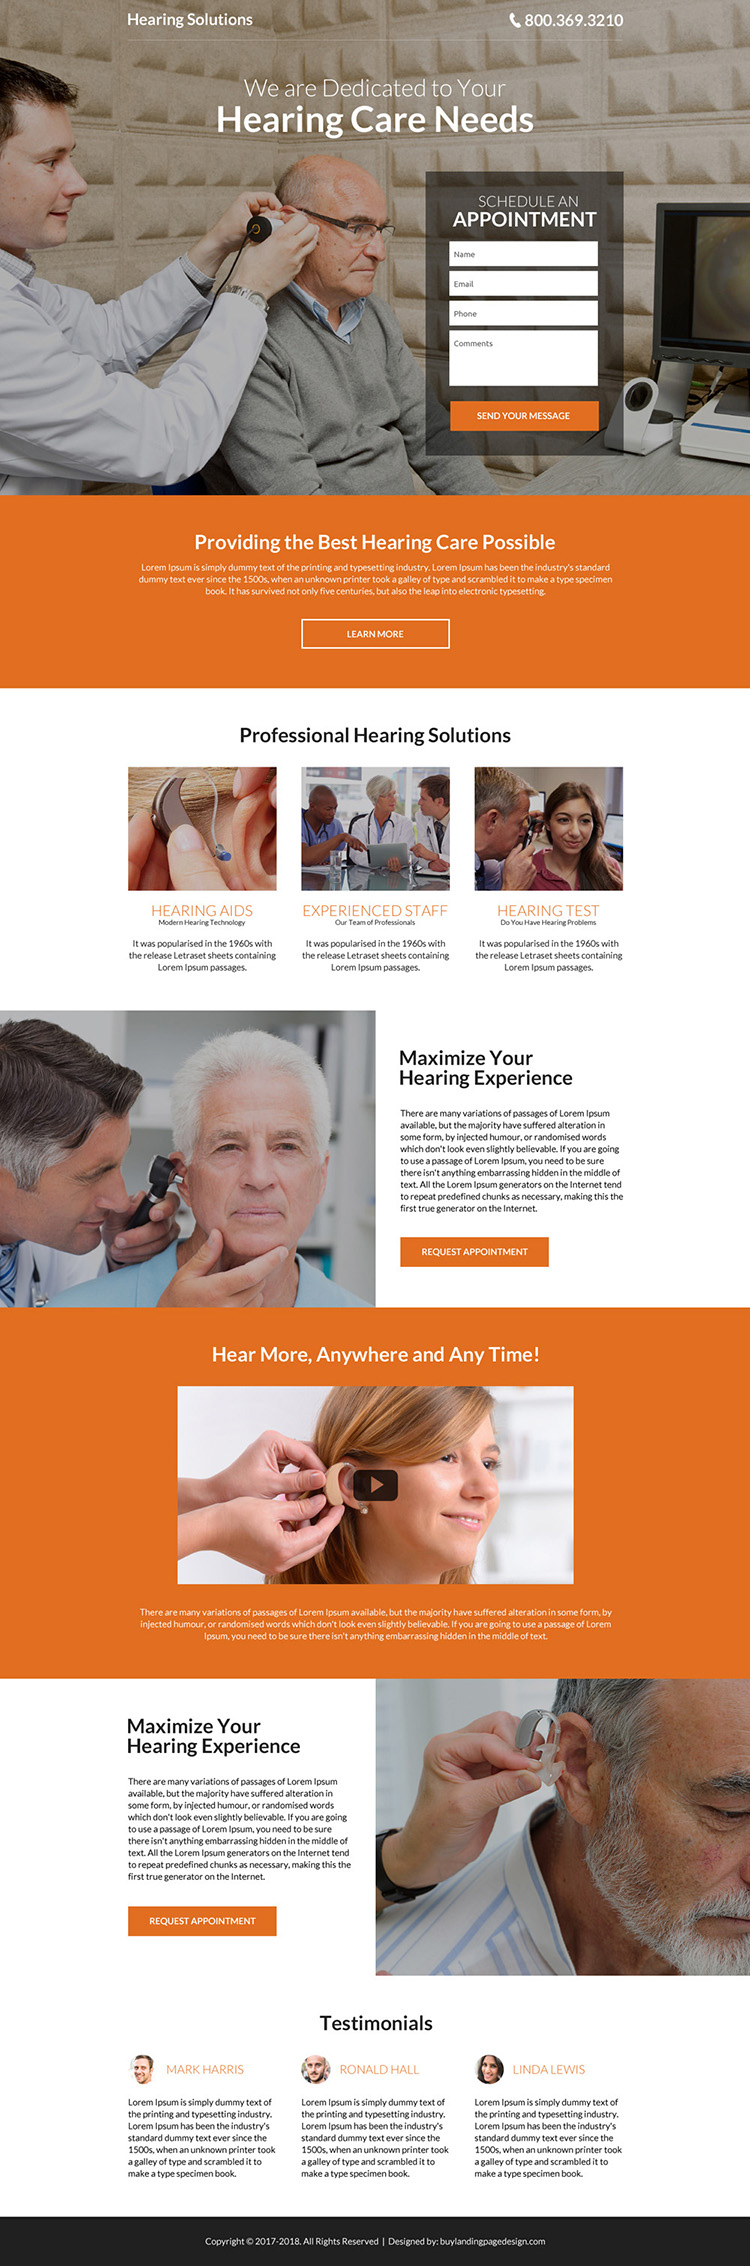 hearing solutions appointments responsive landing page